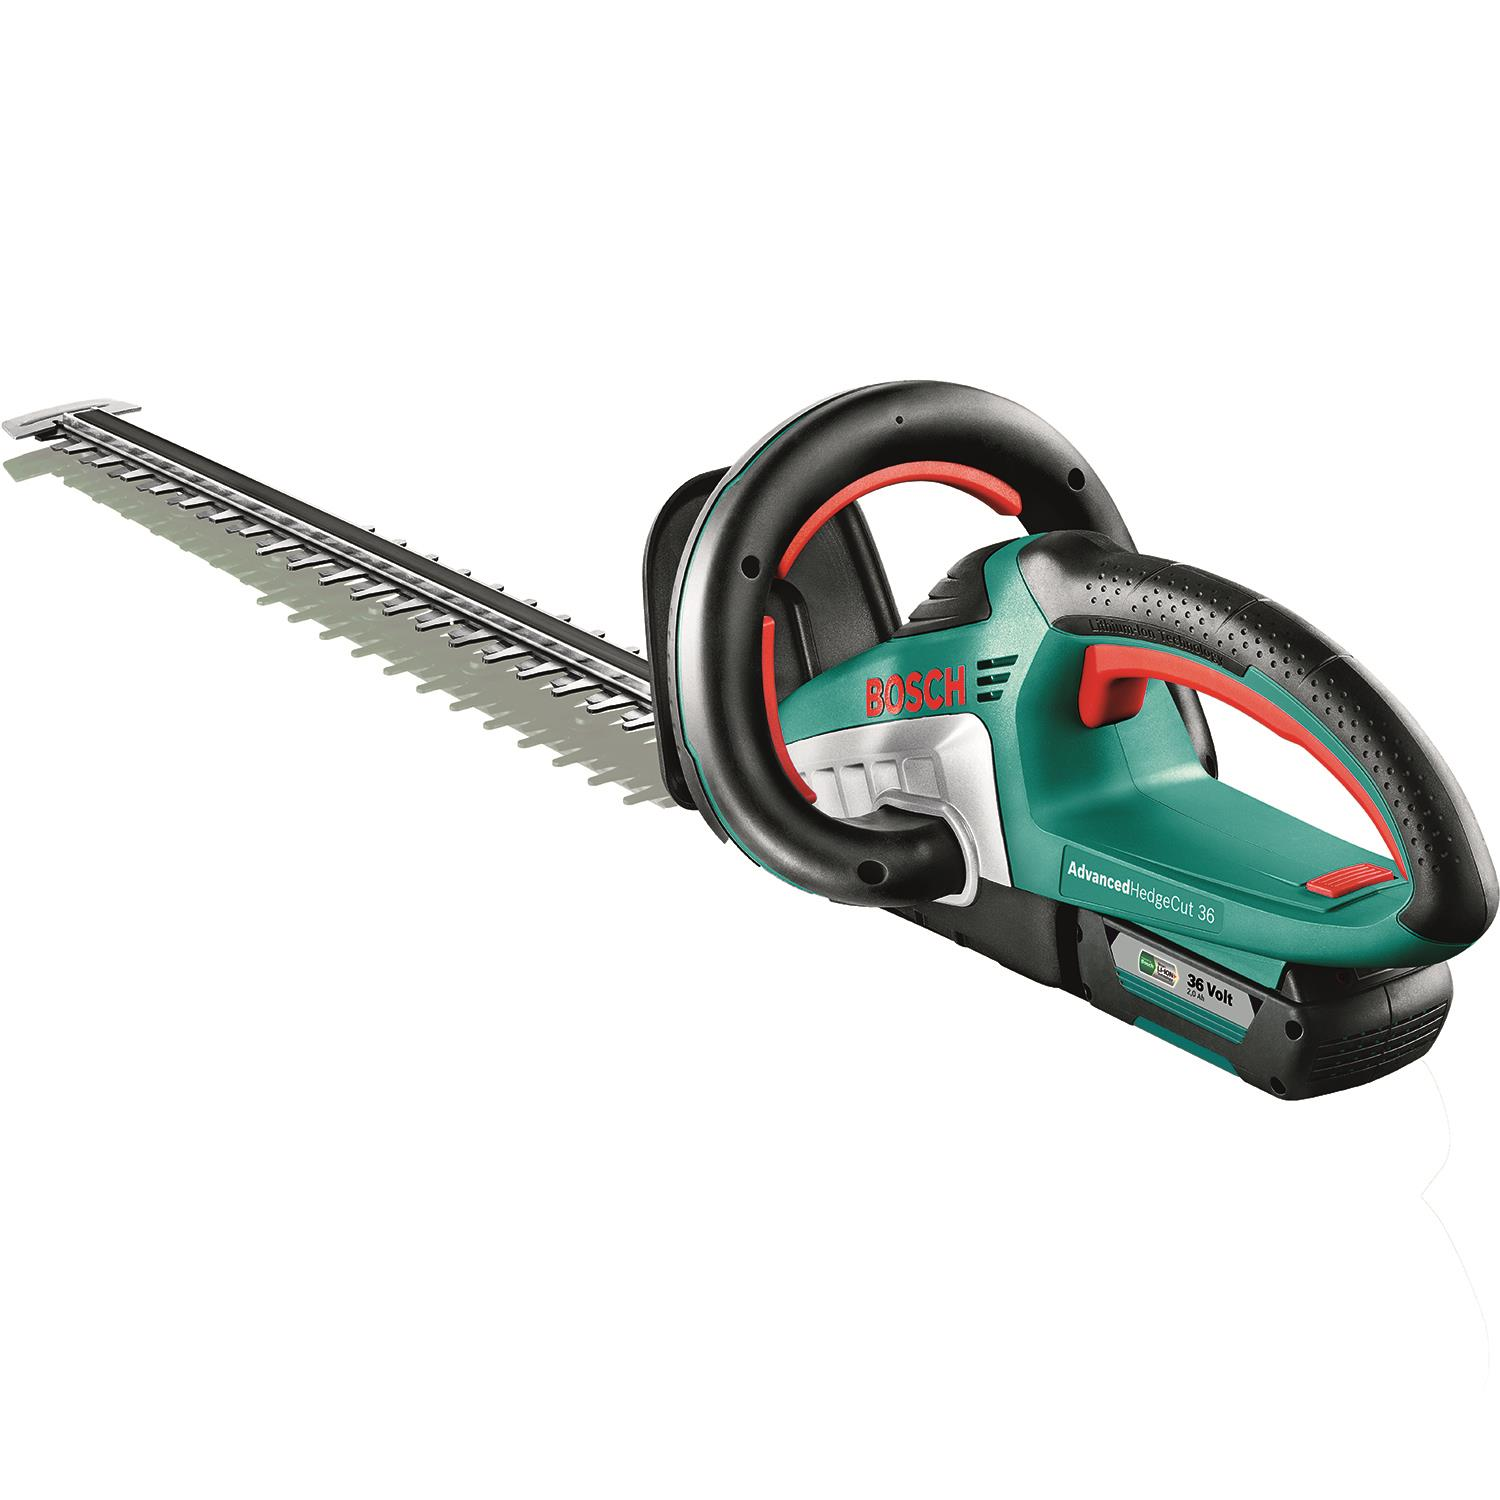 Bosch DIY Advanced Hedgecut 36 Häcksax med 20Ah batteri och laddare